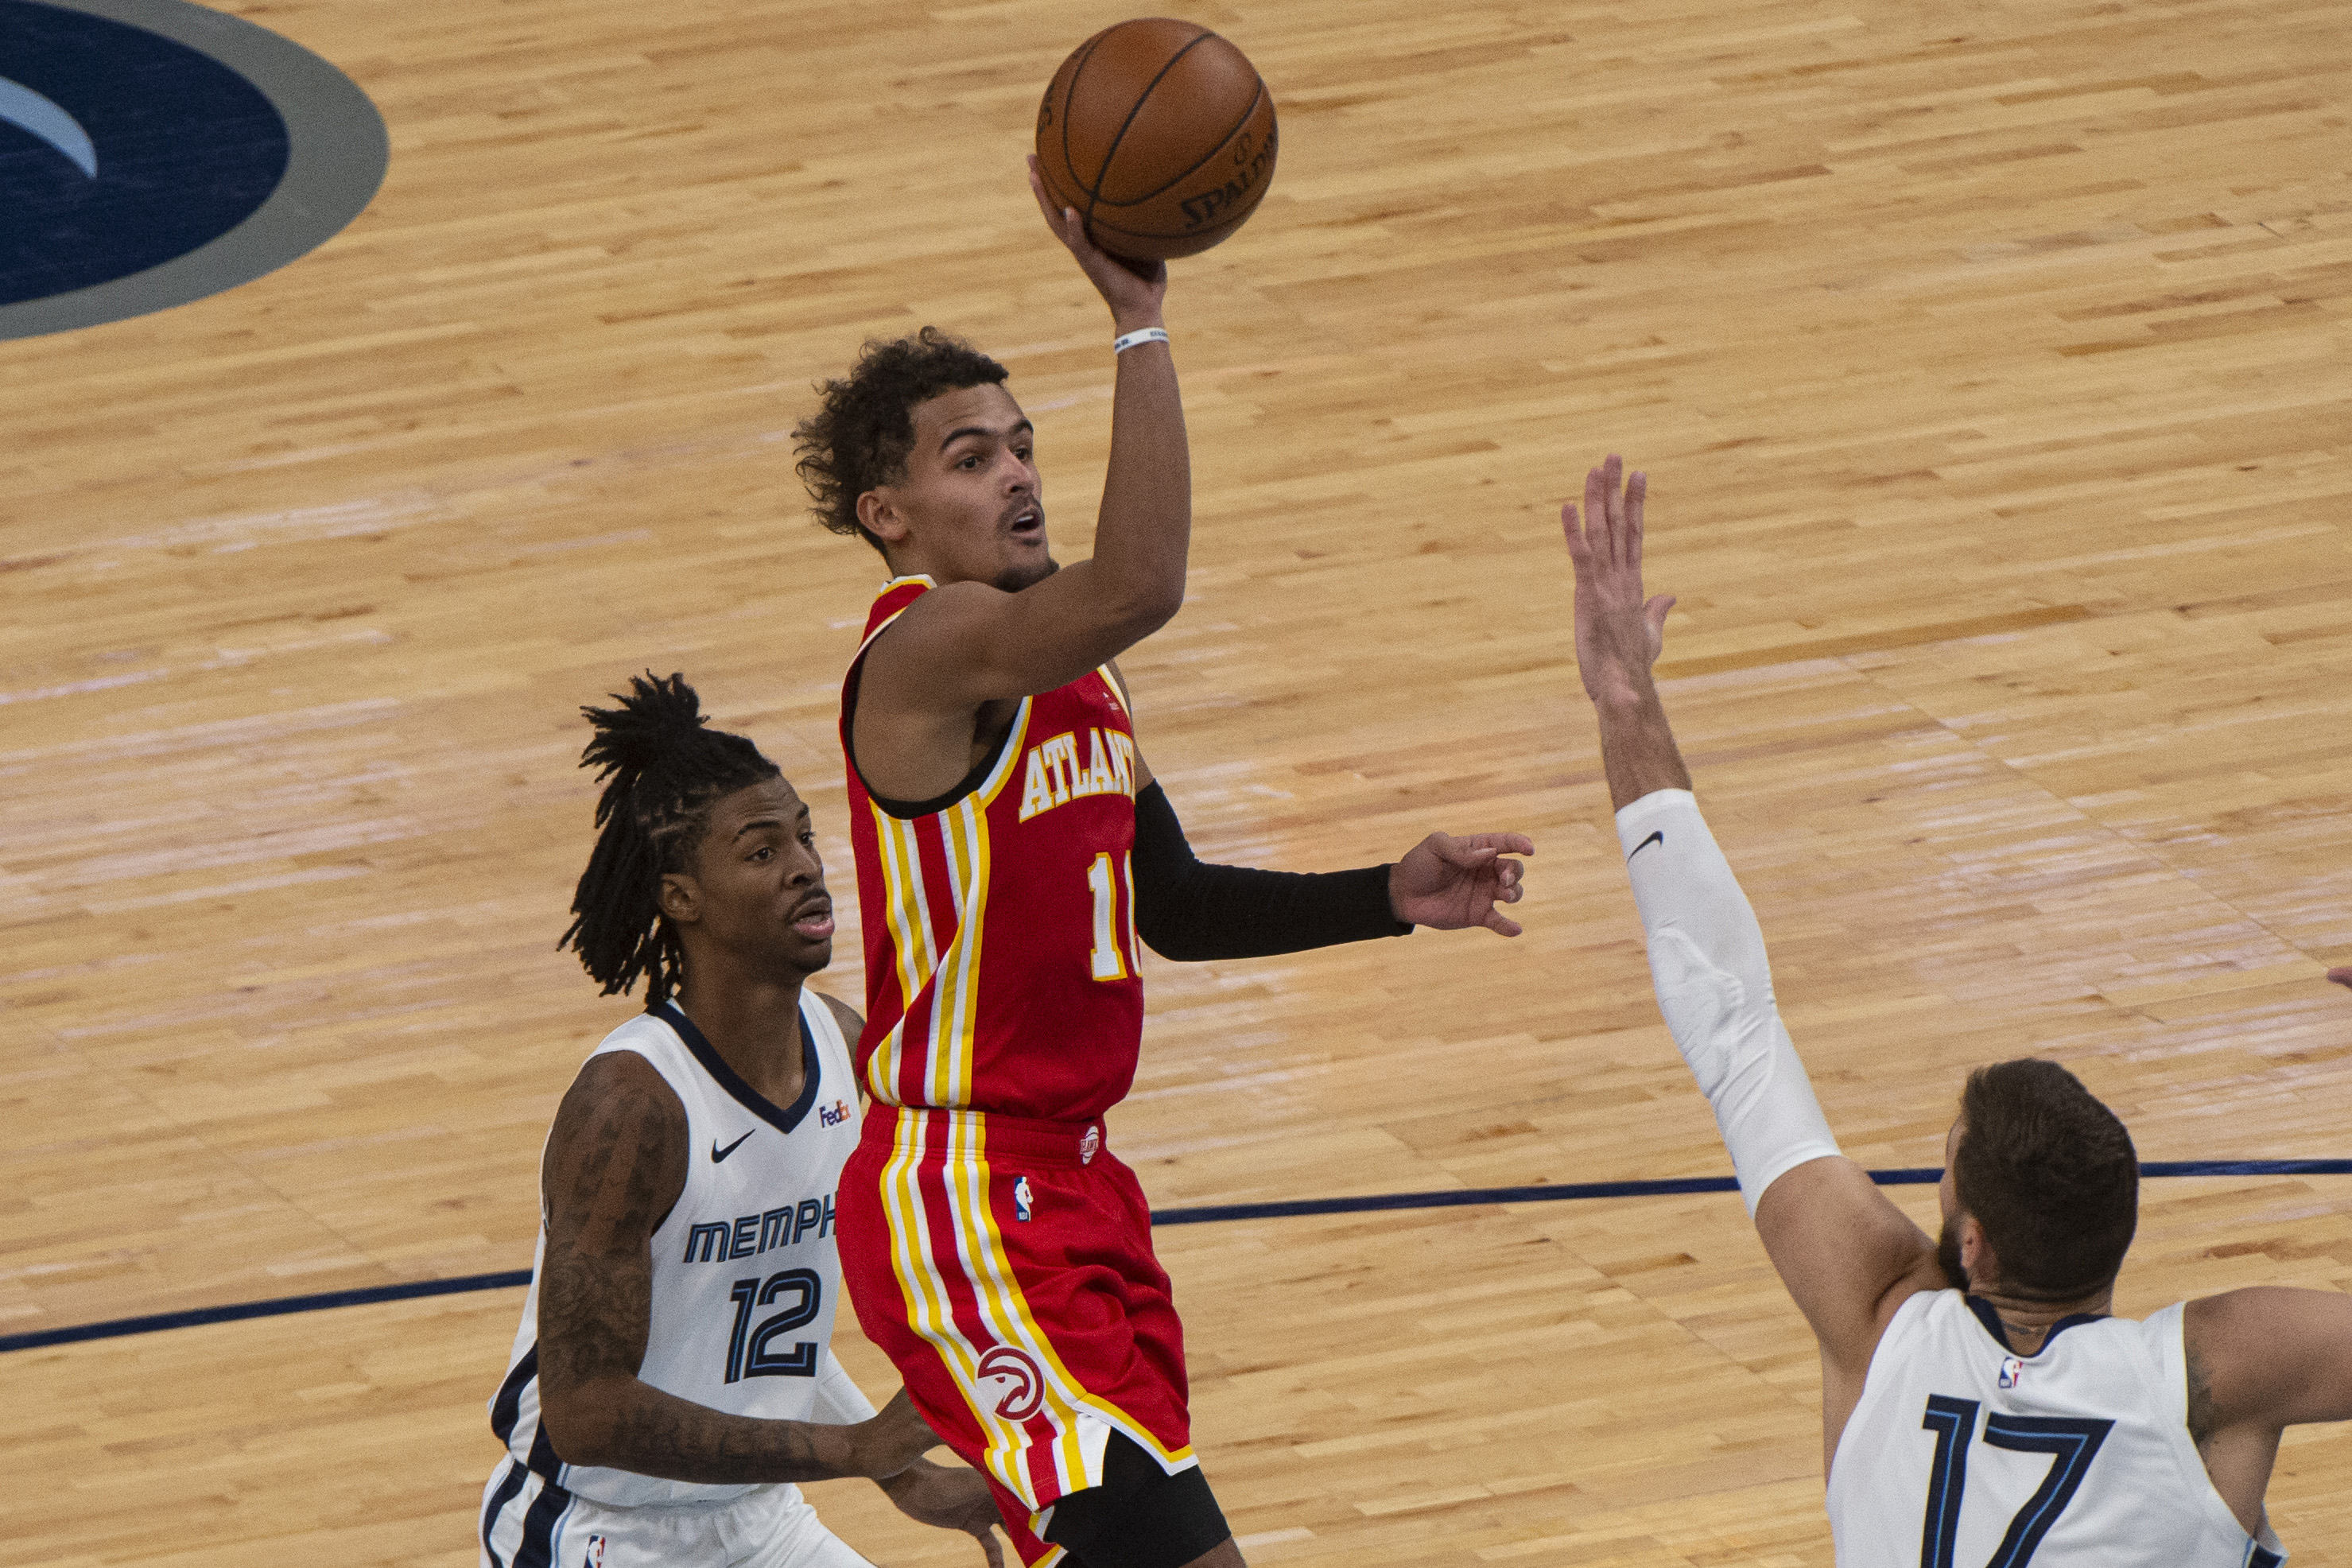 Dec 17, 2020; Memphis, Tennessee, USA; Atlanta Hawks guard Trae Young (11) goes to the basket against Memphis Grizzlies center Jonas Valanciunas (17) during the second half at FedExForum.